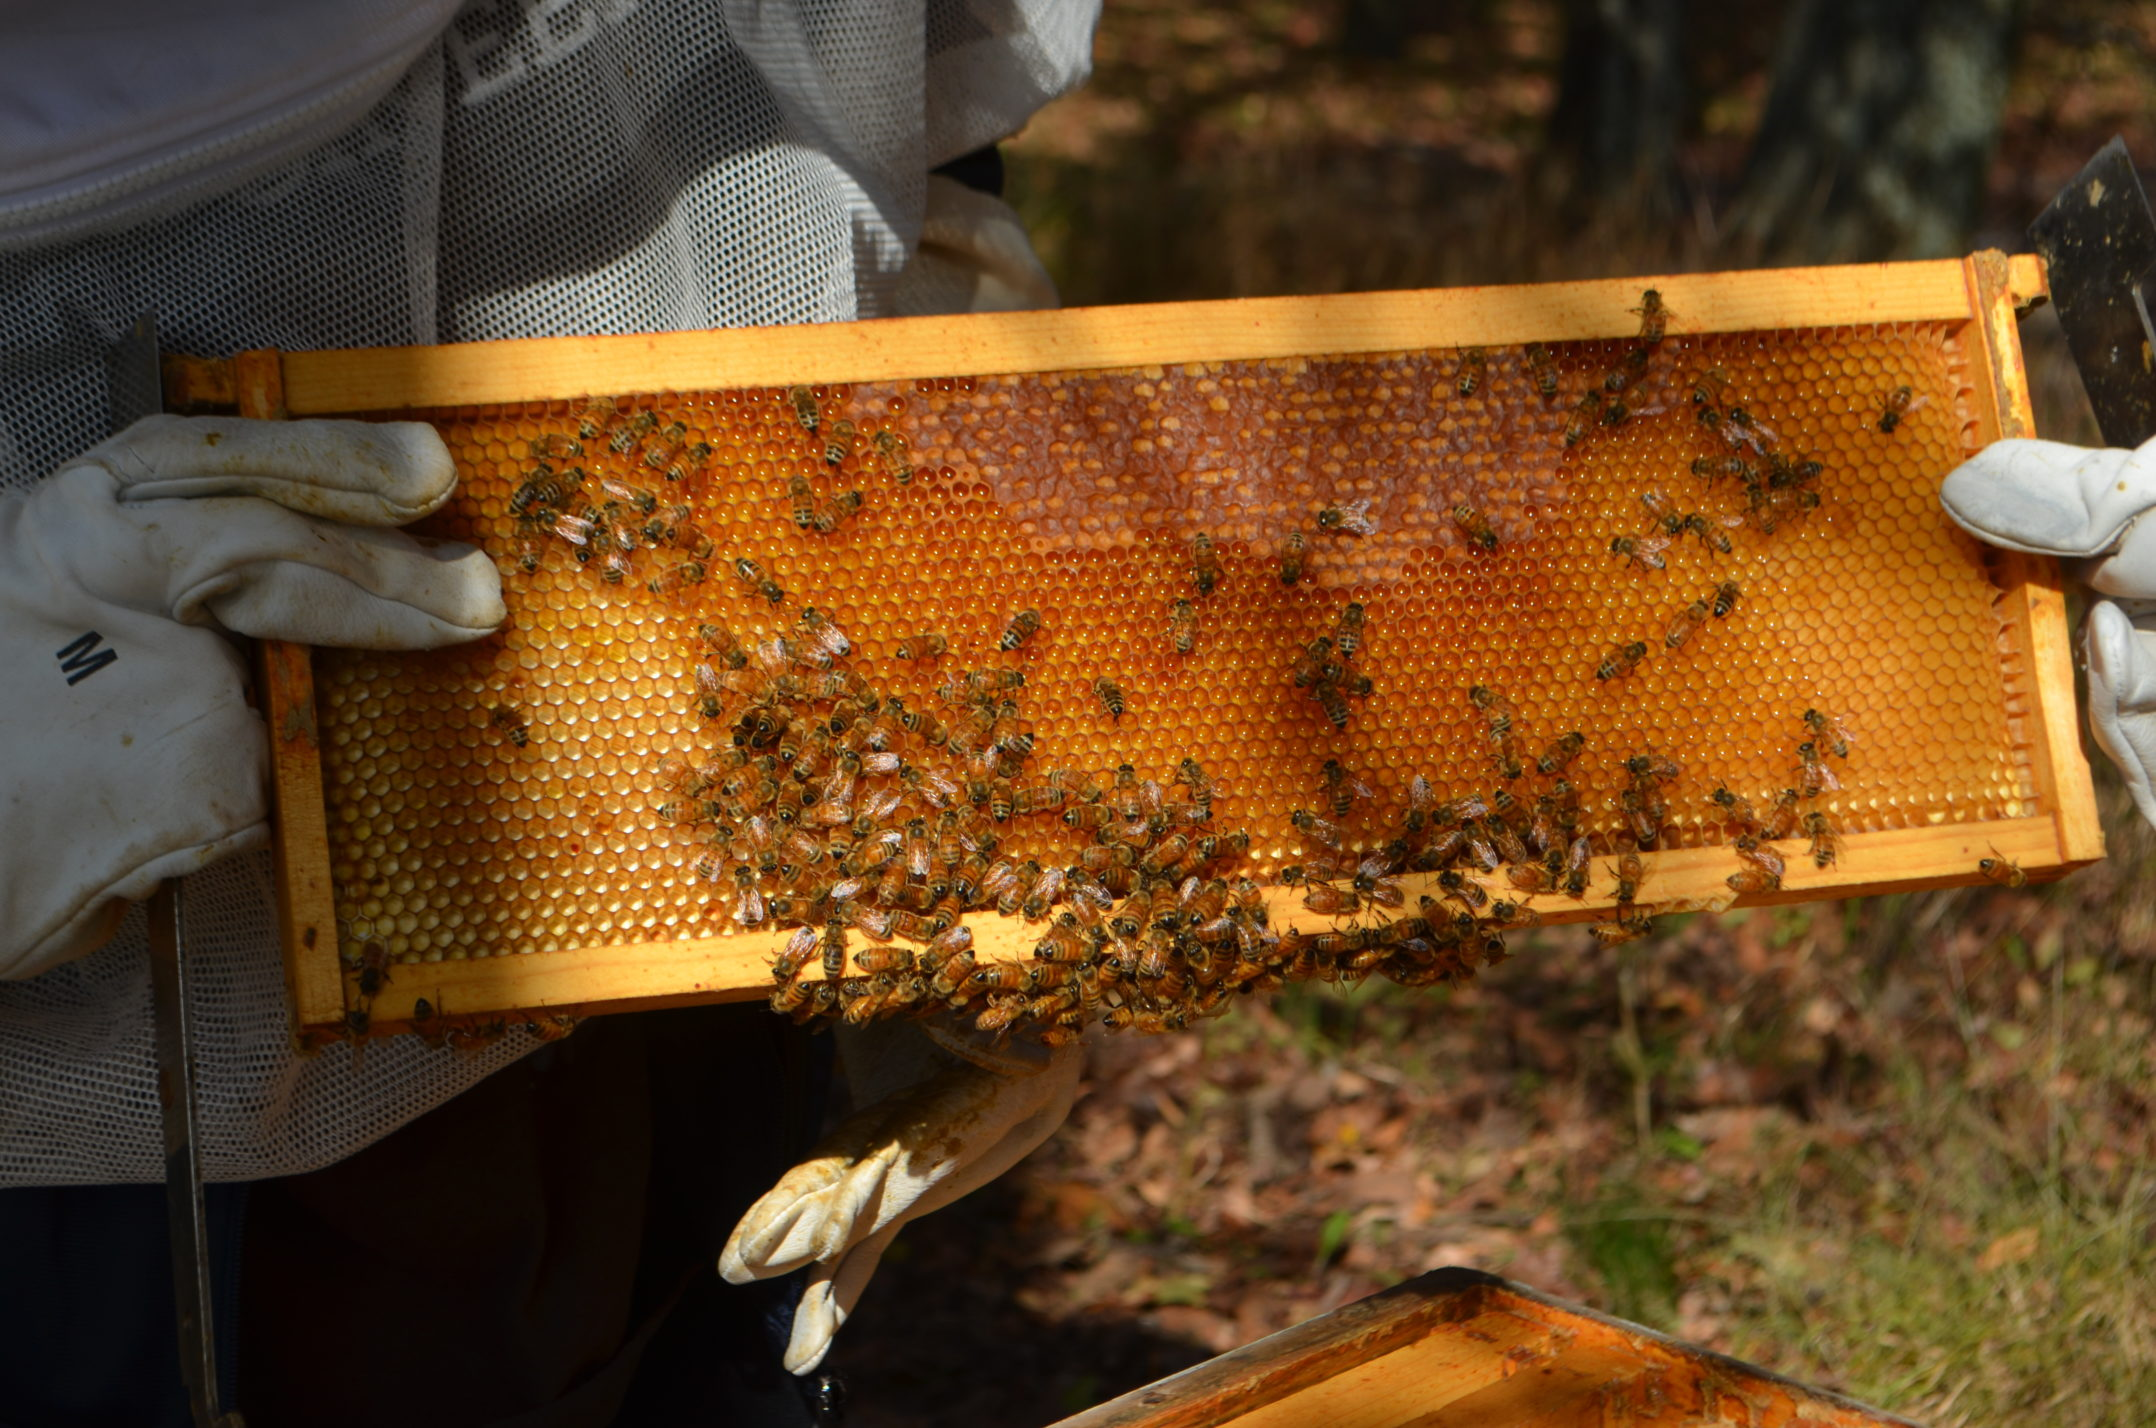 A frame with many bees on it is pulled out of the hive. Each hive contains many frames where the bees can build comb, store nectar and make honey. (Delaney McCaffrey/B&W Staff)